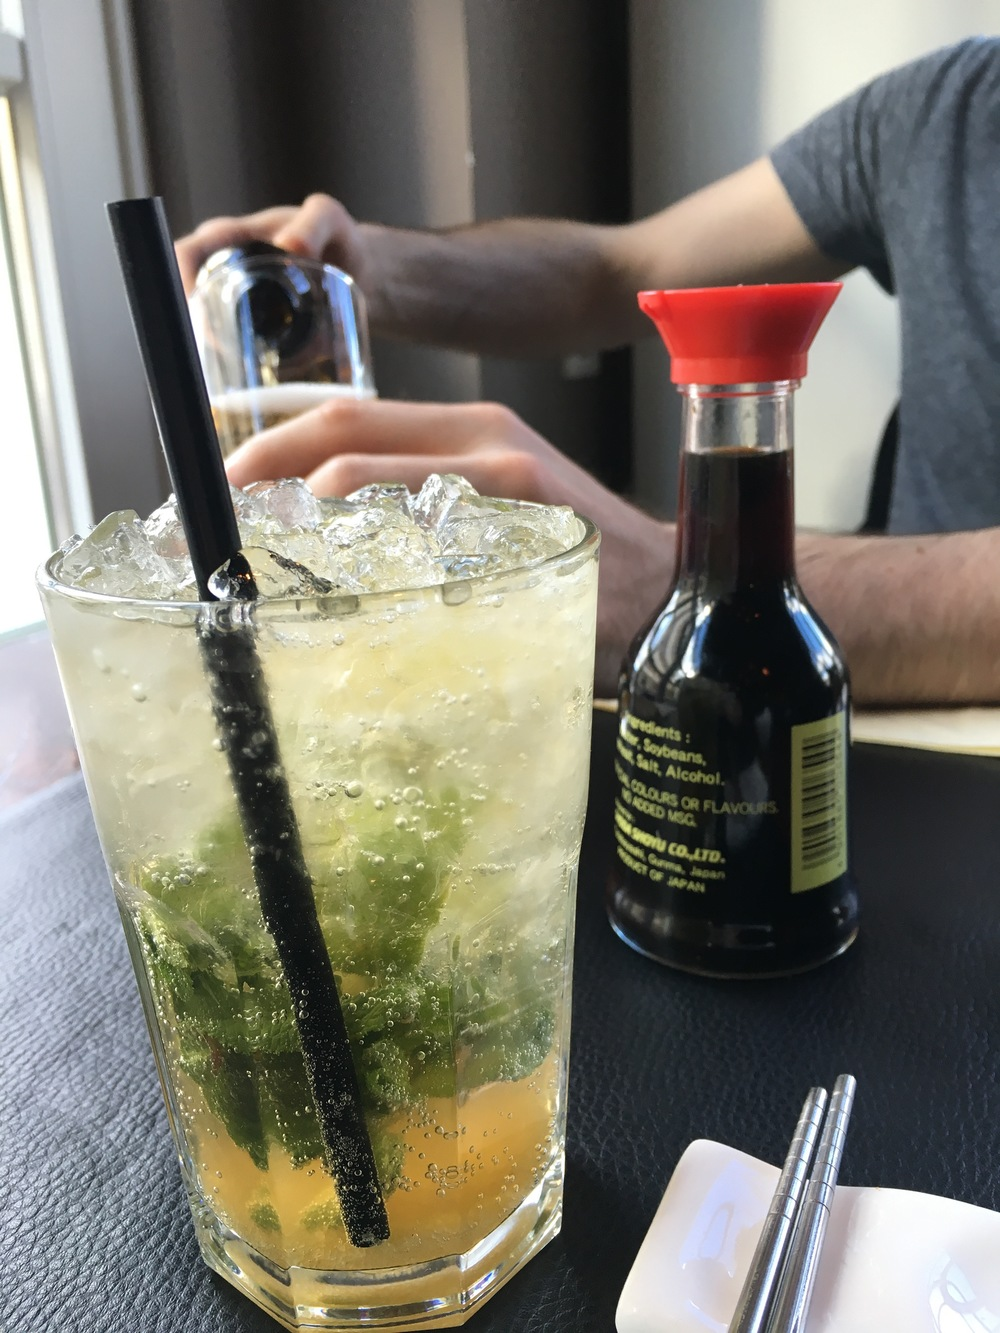 My Asian Cooler cocktail with Matt pouring his Asahi in the background